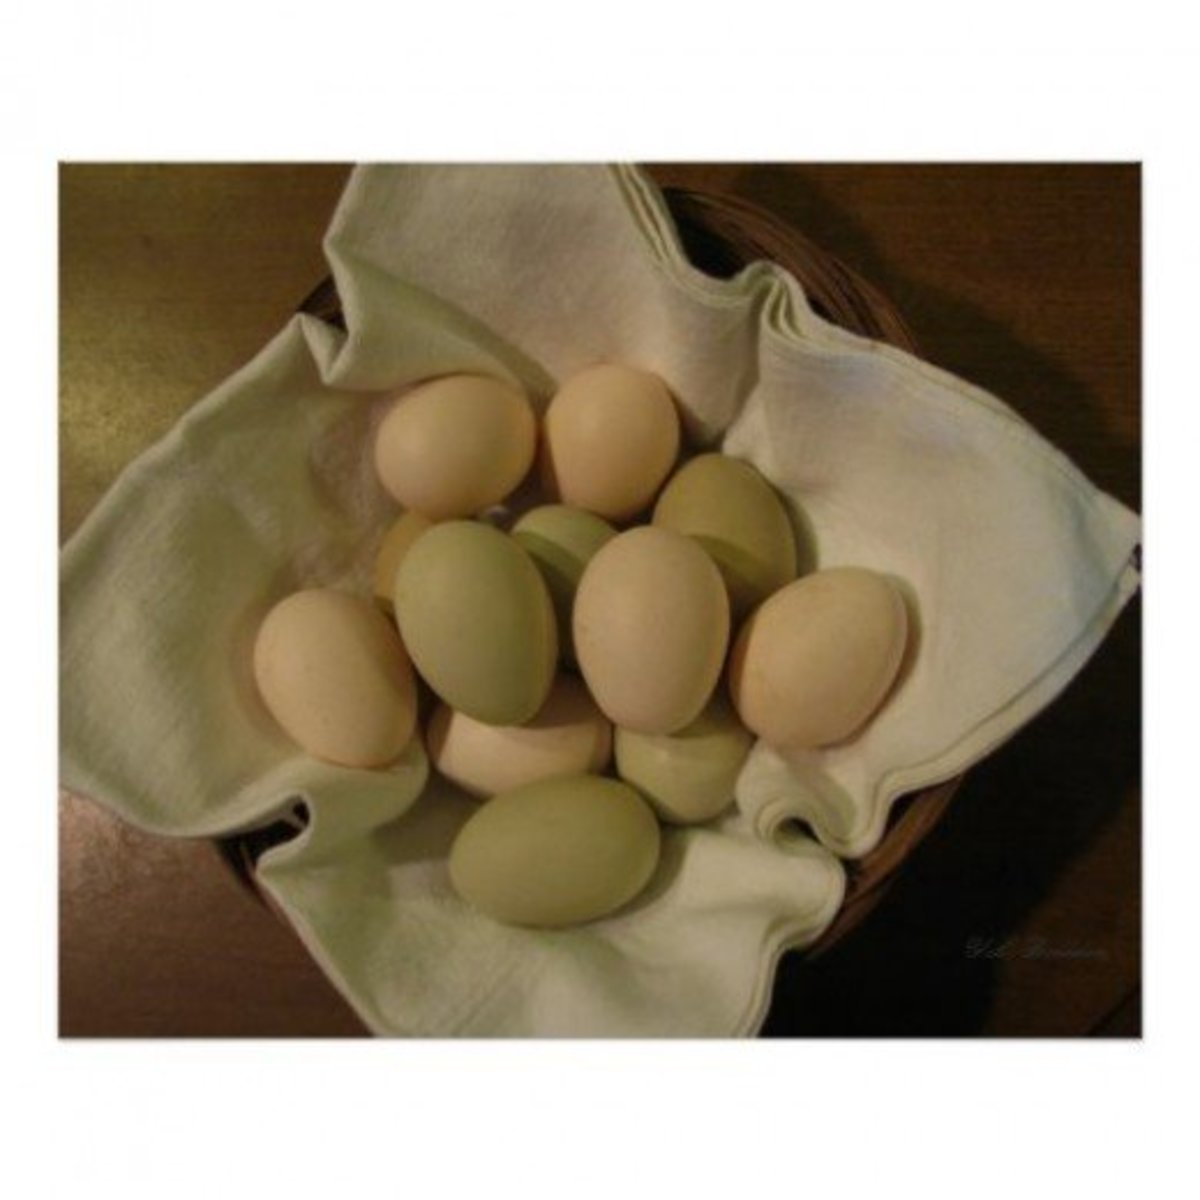 Seven beautiful and healthy Ameraucana (Easter Egg chicken) eggs.